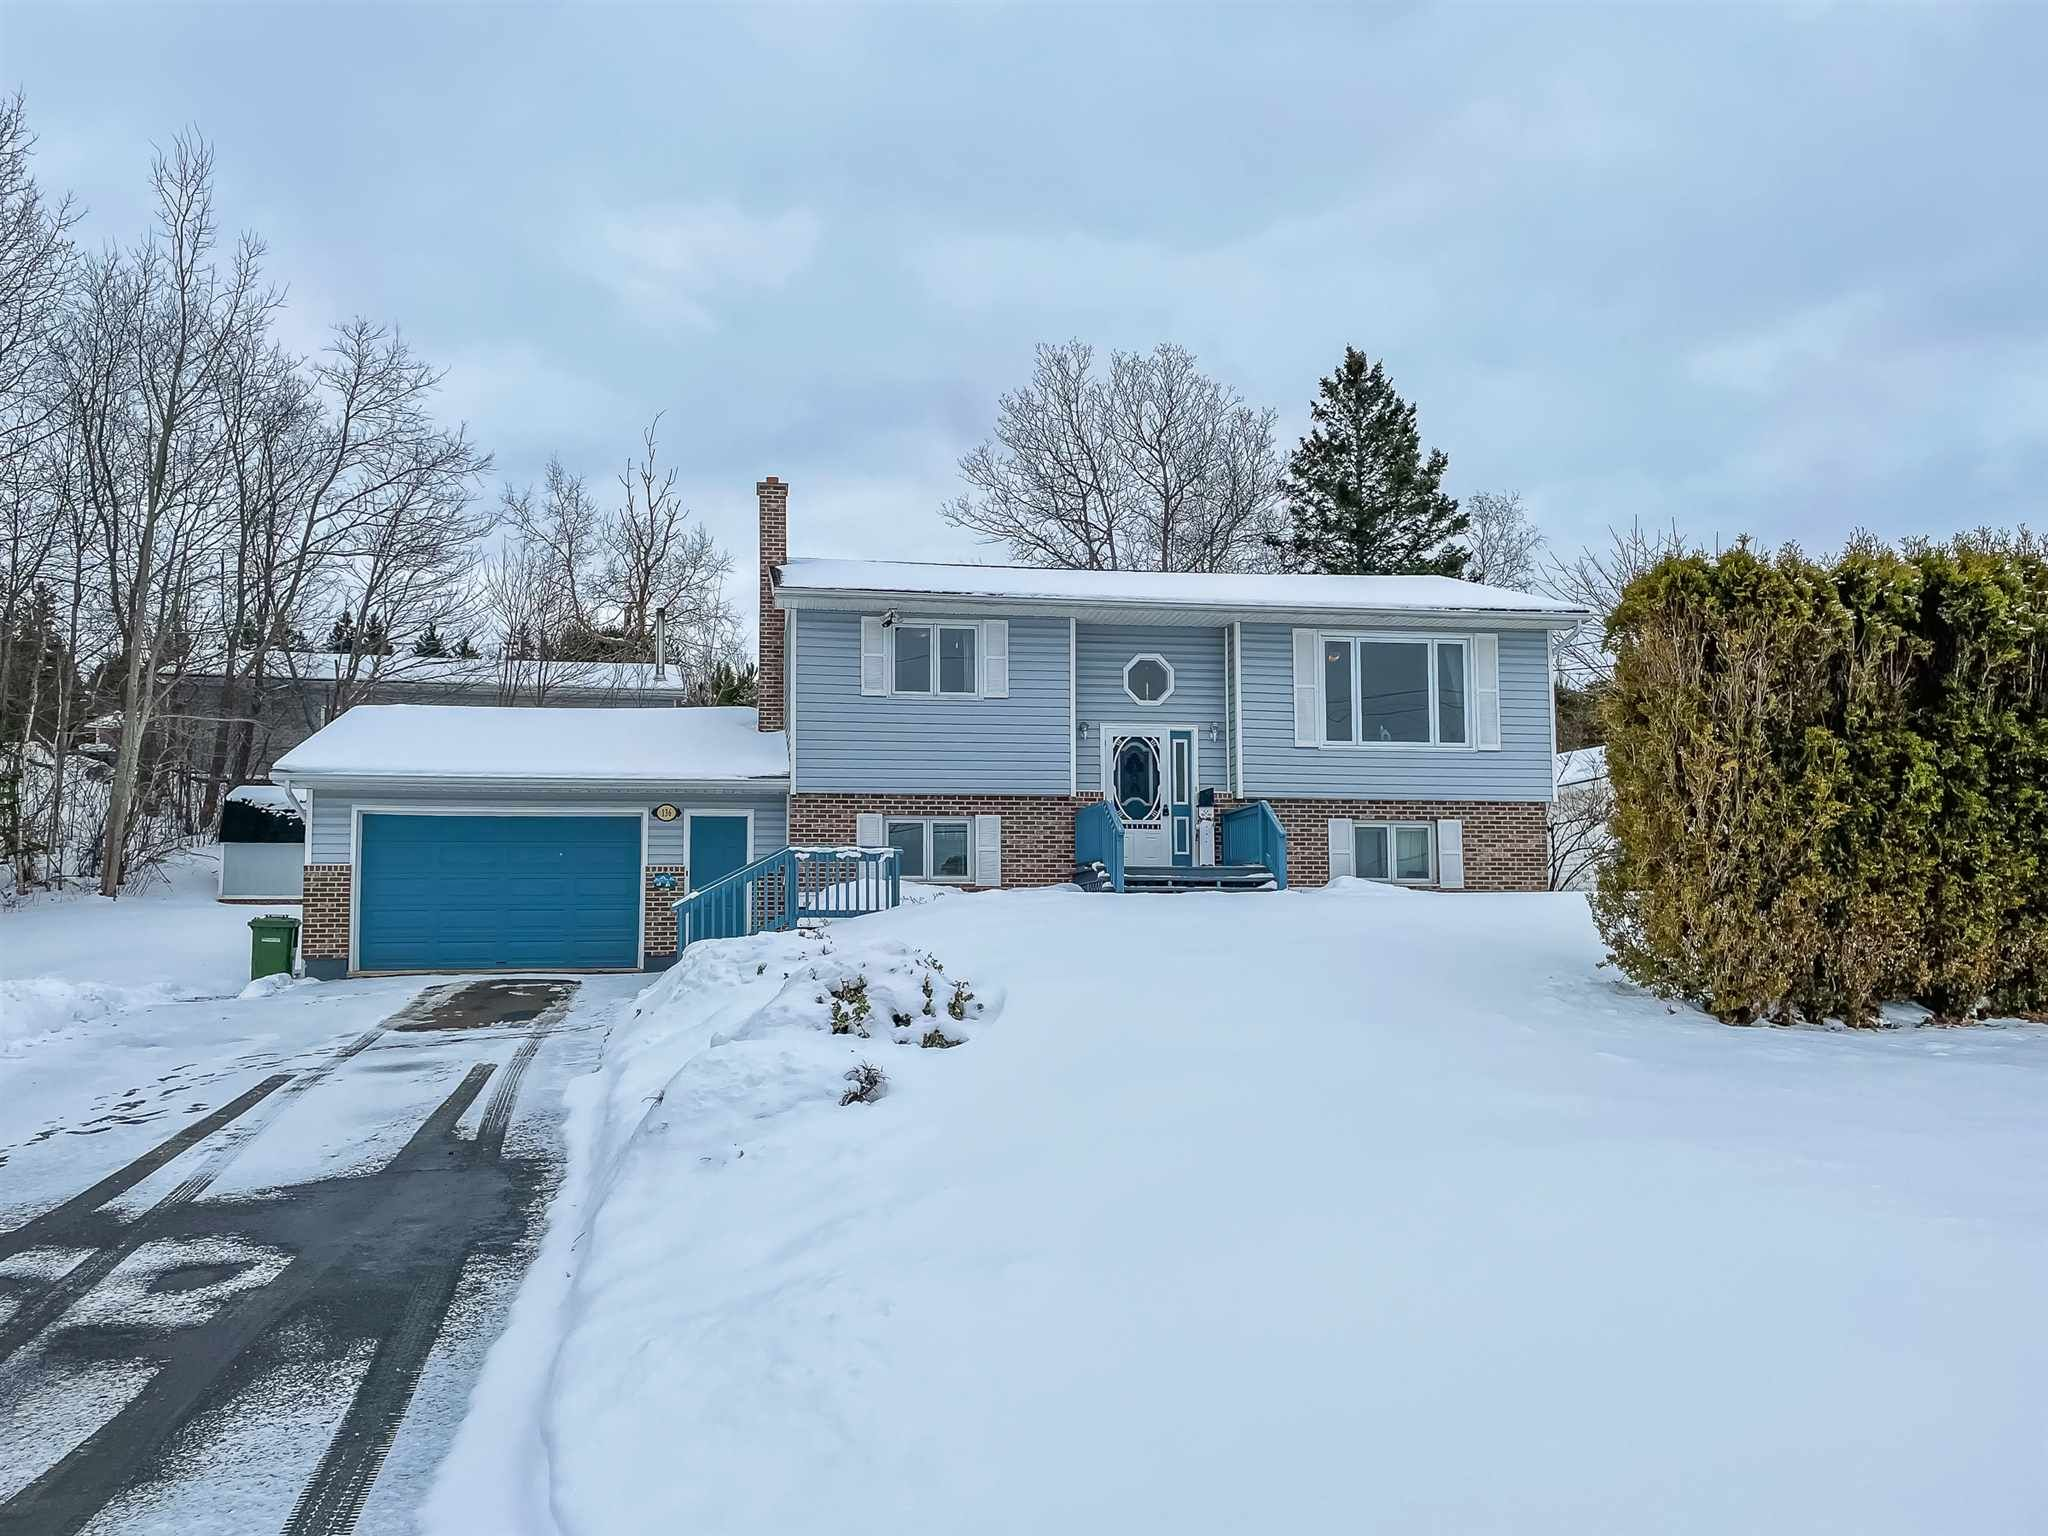 Main Photo: 136 Milne Avenue in New Minas: 404-Kings County Residential for sale (Annapolis Valley)  : MLS®# 202101492